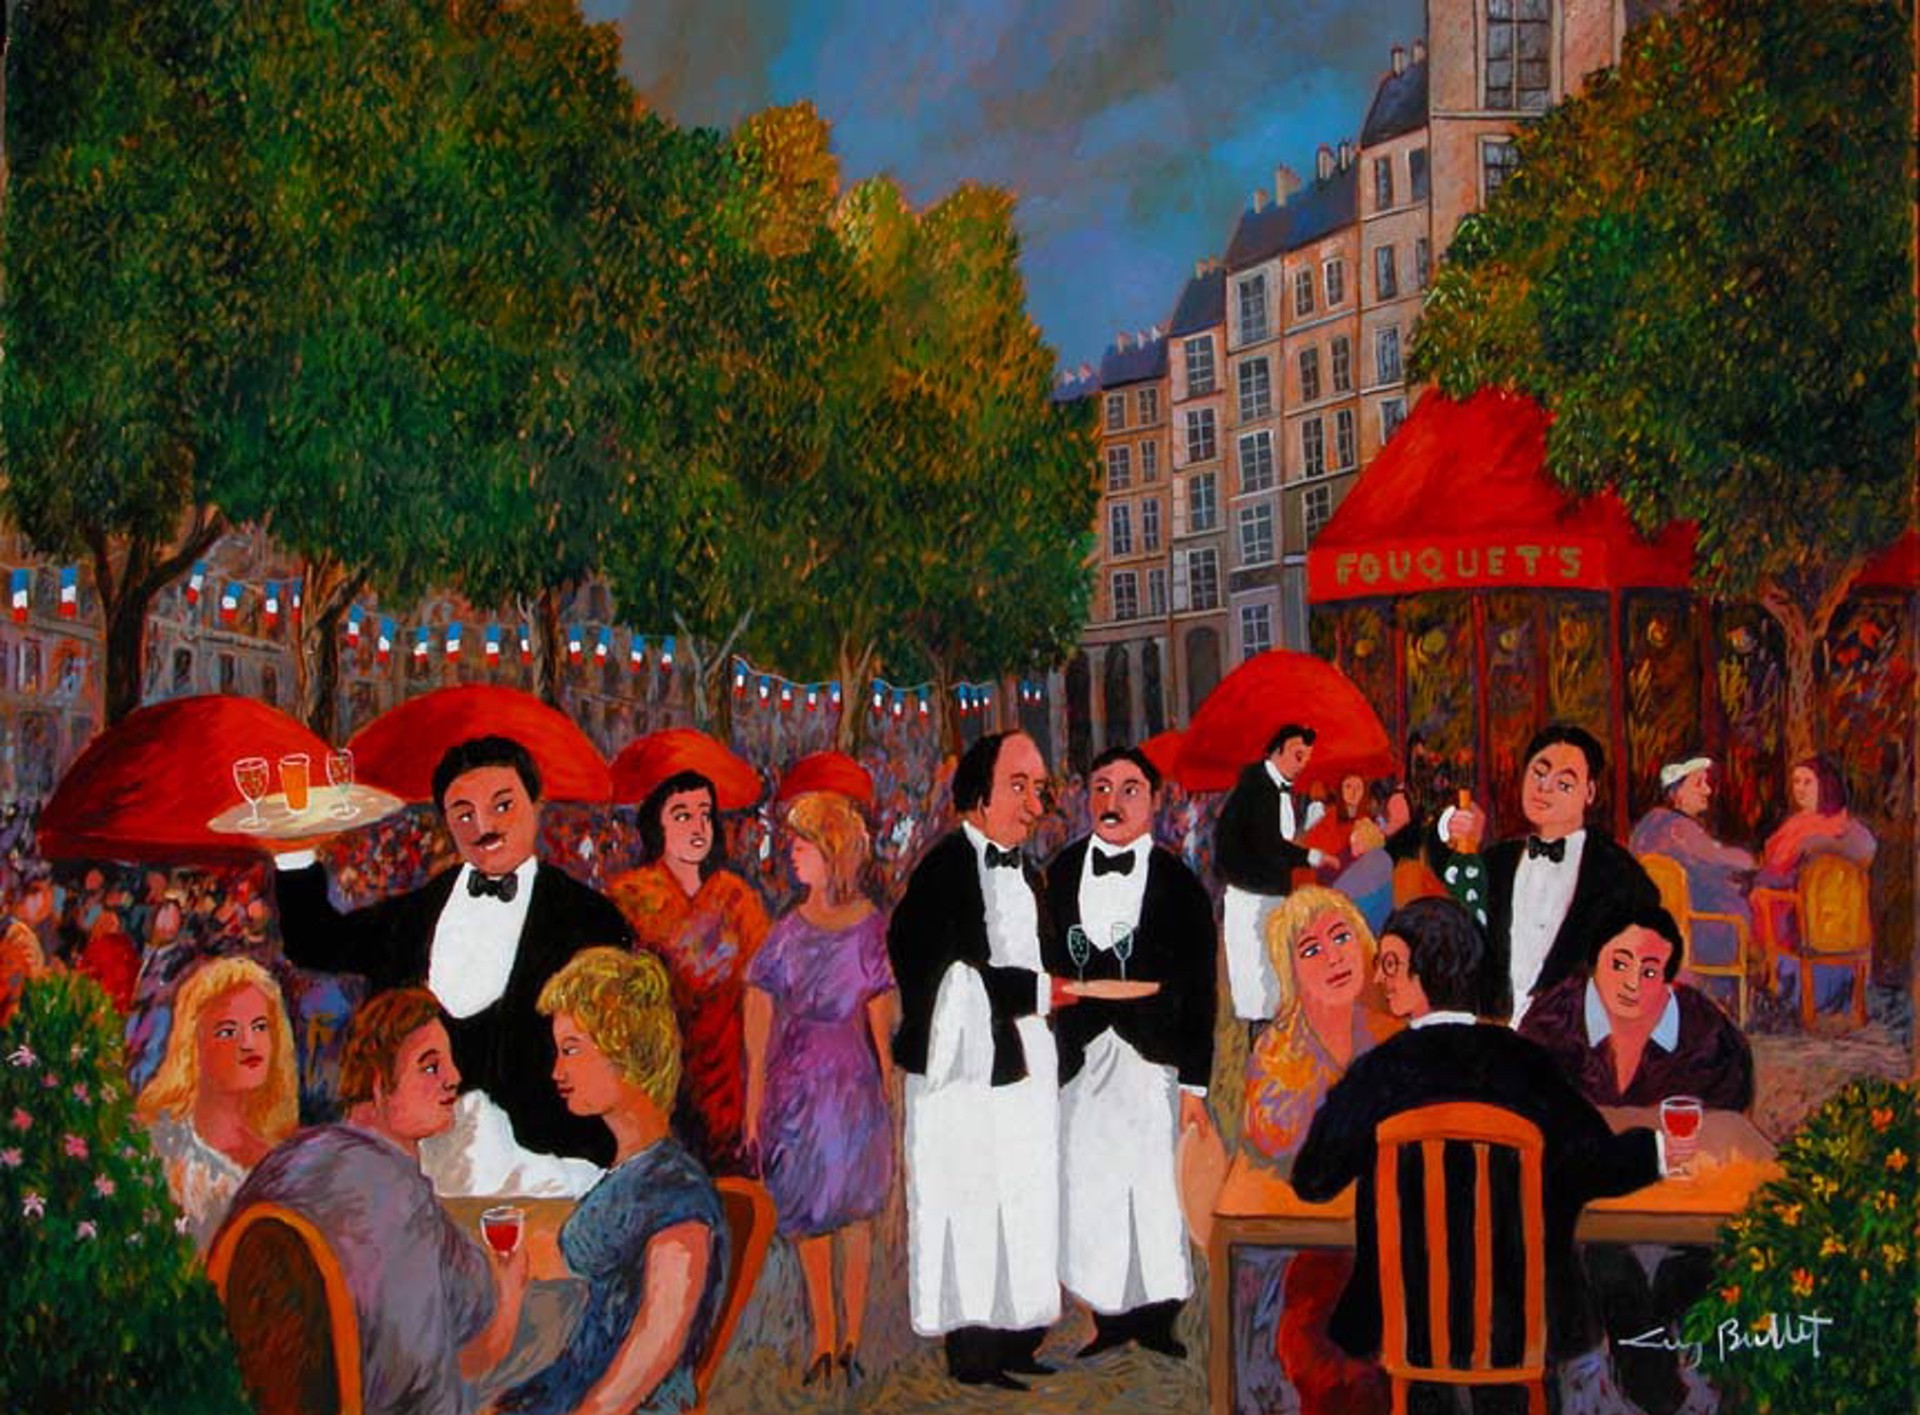 Bastile Day On The Champs Elysees - Paris by Guy Buffet